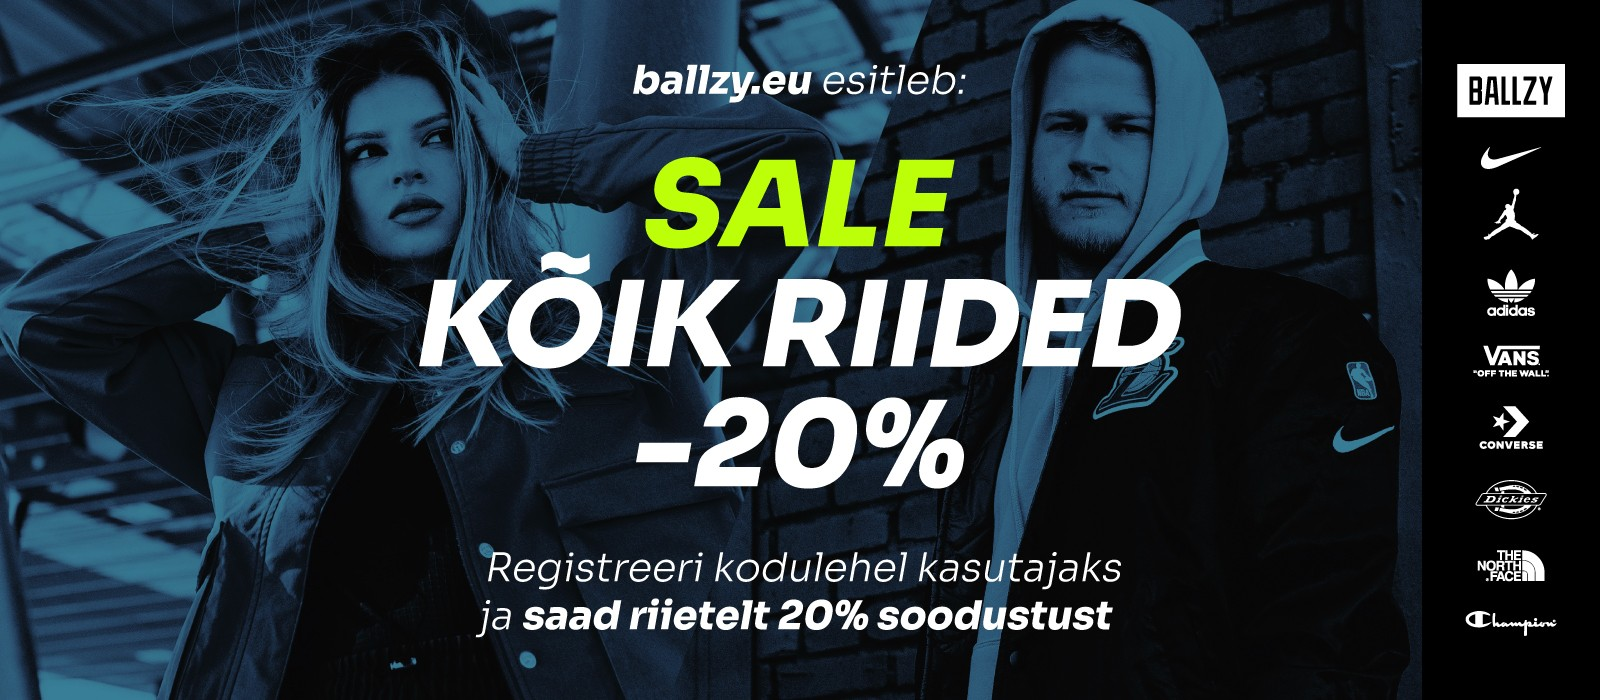 Ballzy Clothing Sale Campaign